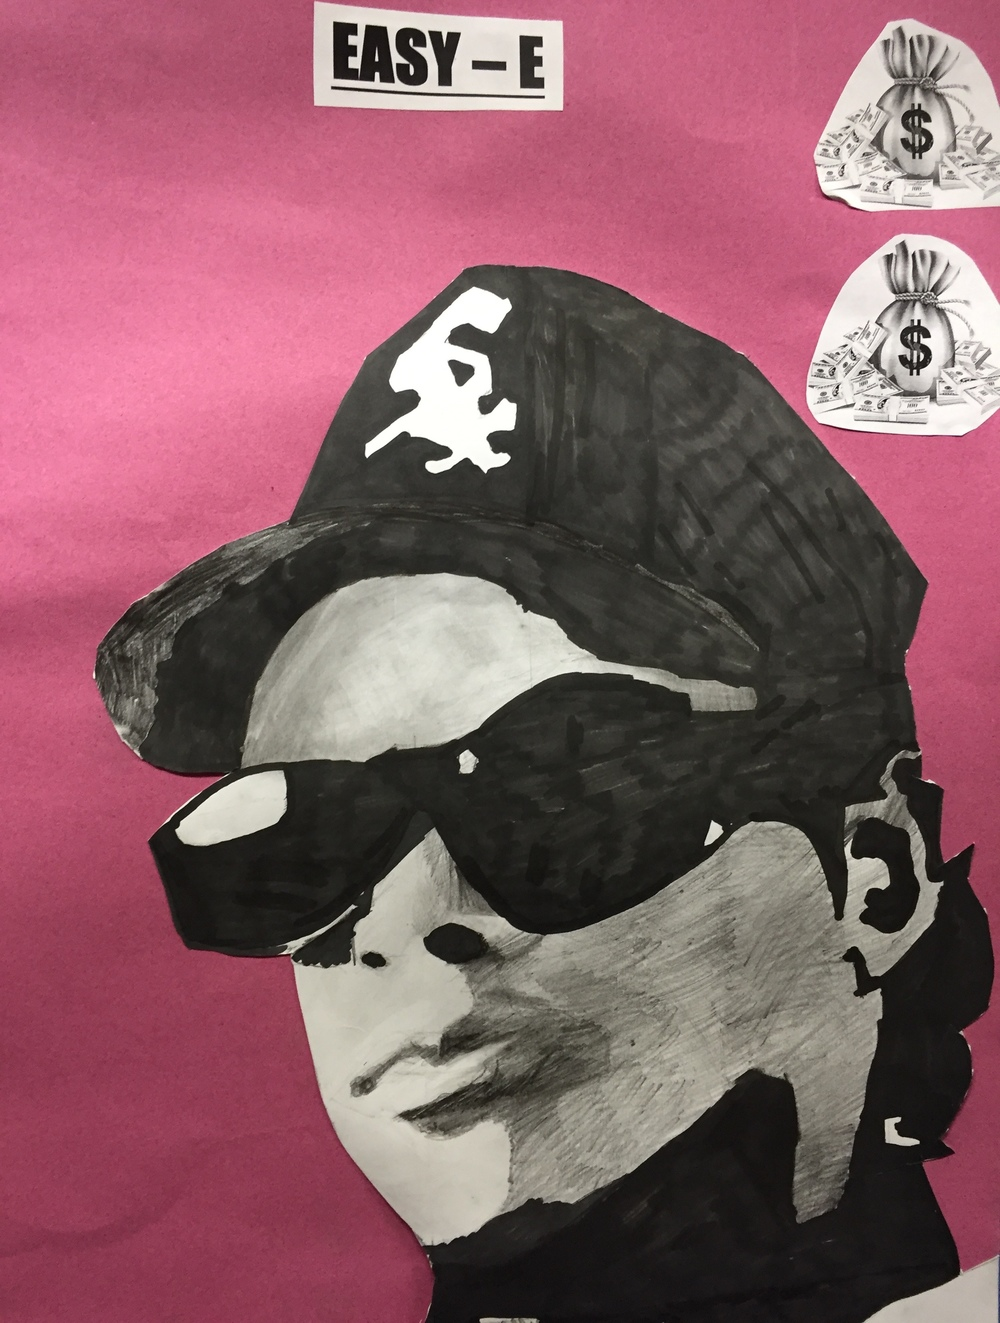 Eazy-E by Martin Feeney